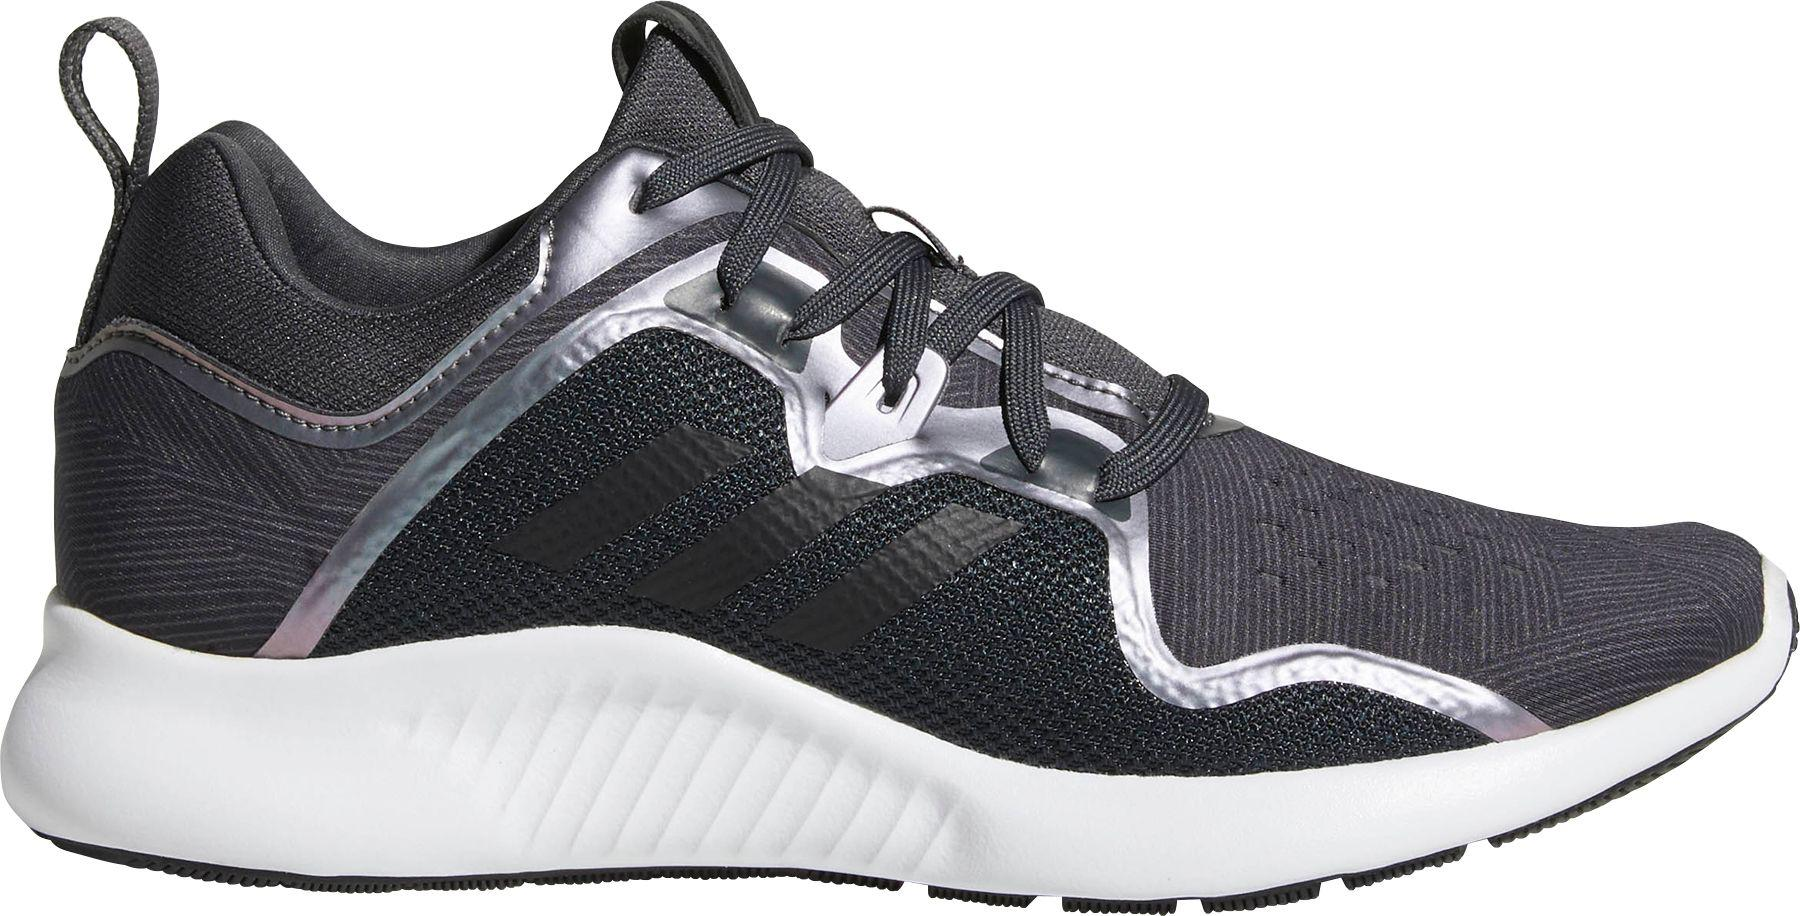 b24a8e962 Lyst - adidas Edgebounce Running Shoes in Black